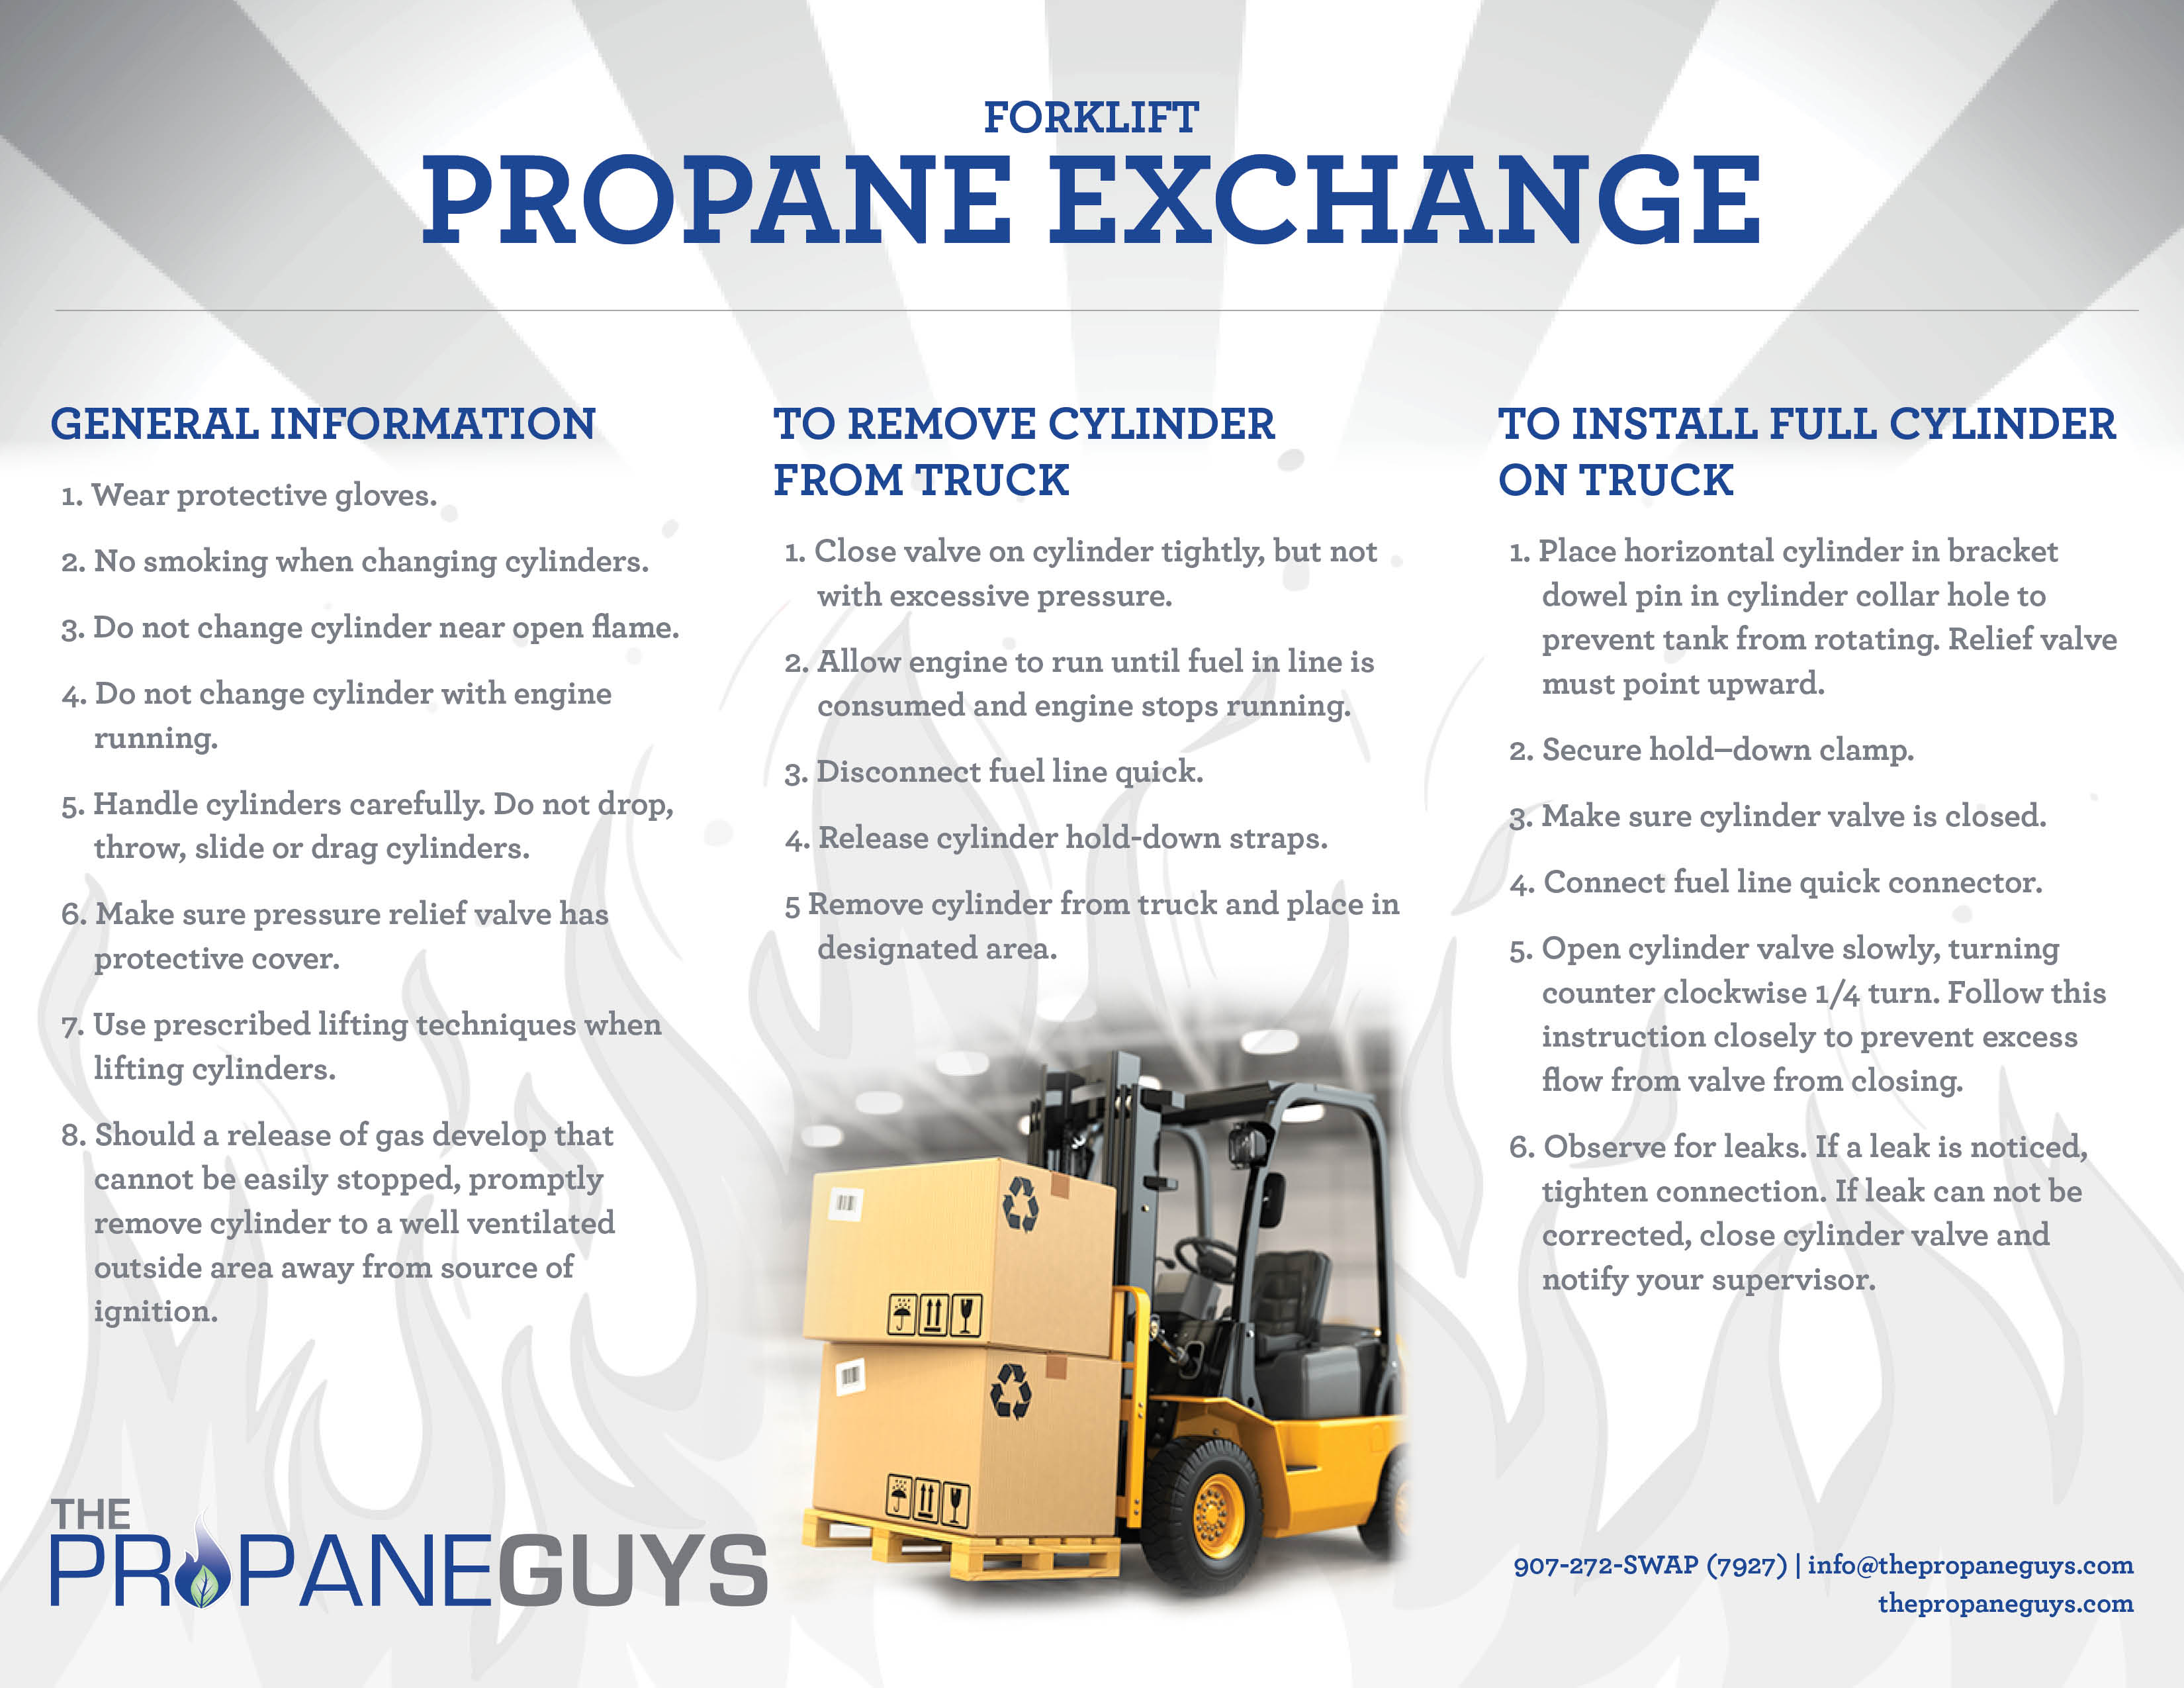 Handling forklift propane safely the propane guys download forklift propane safety sheet now 1betcityfo Image collections